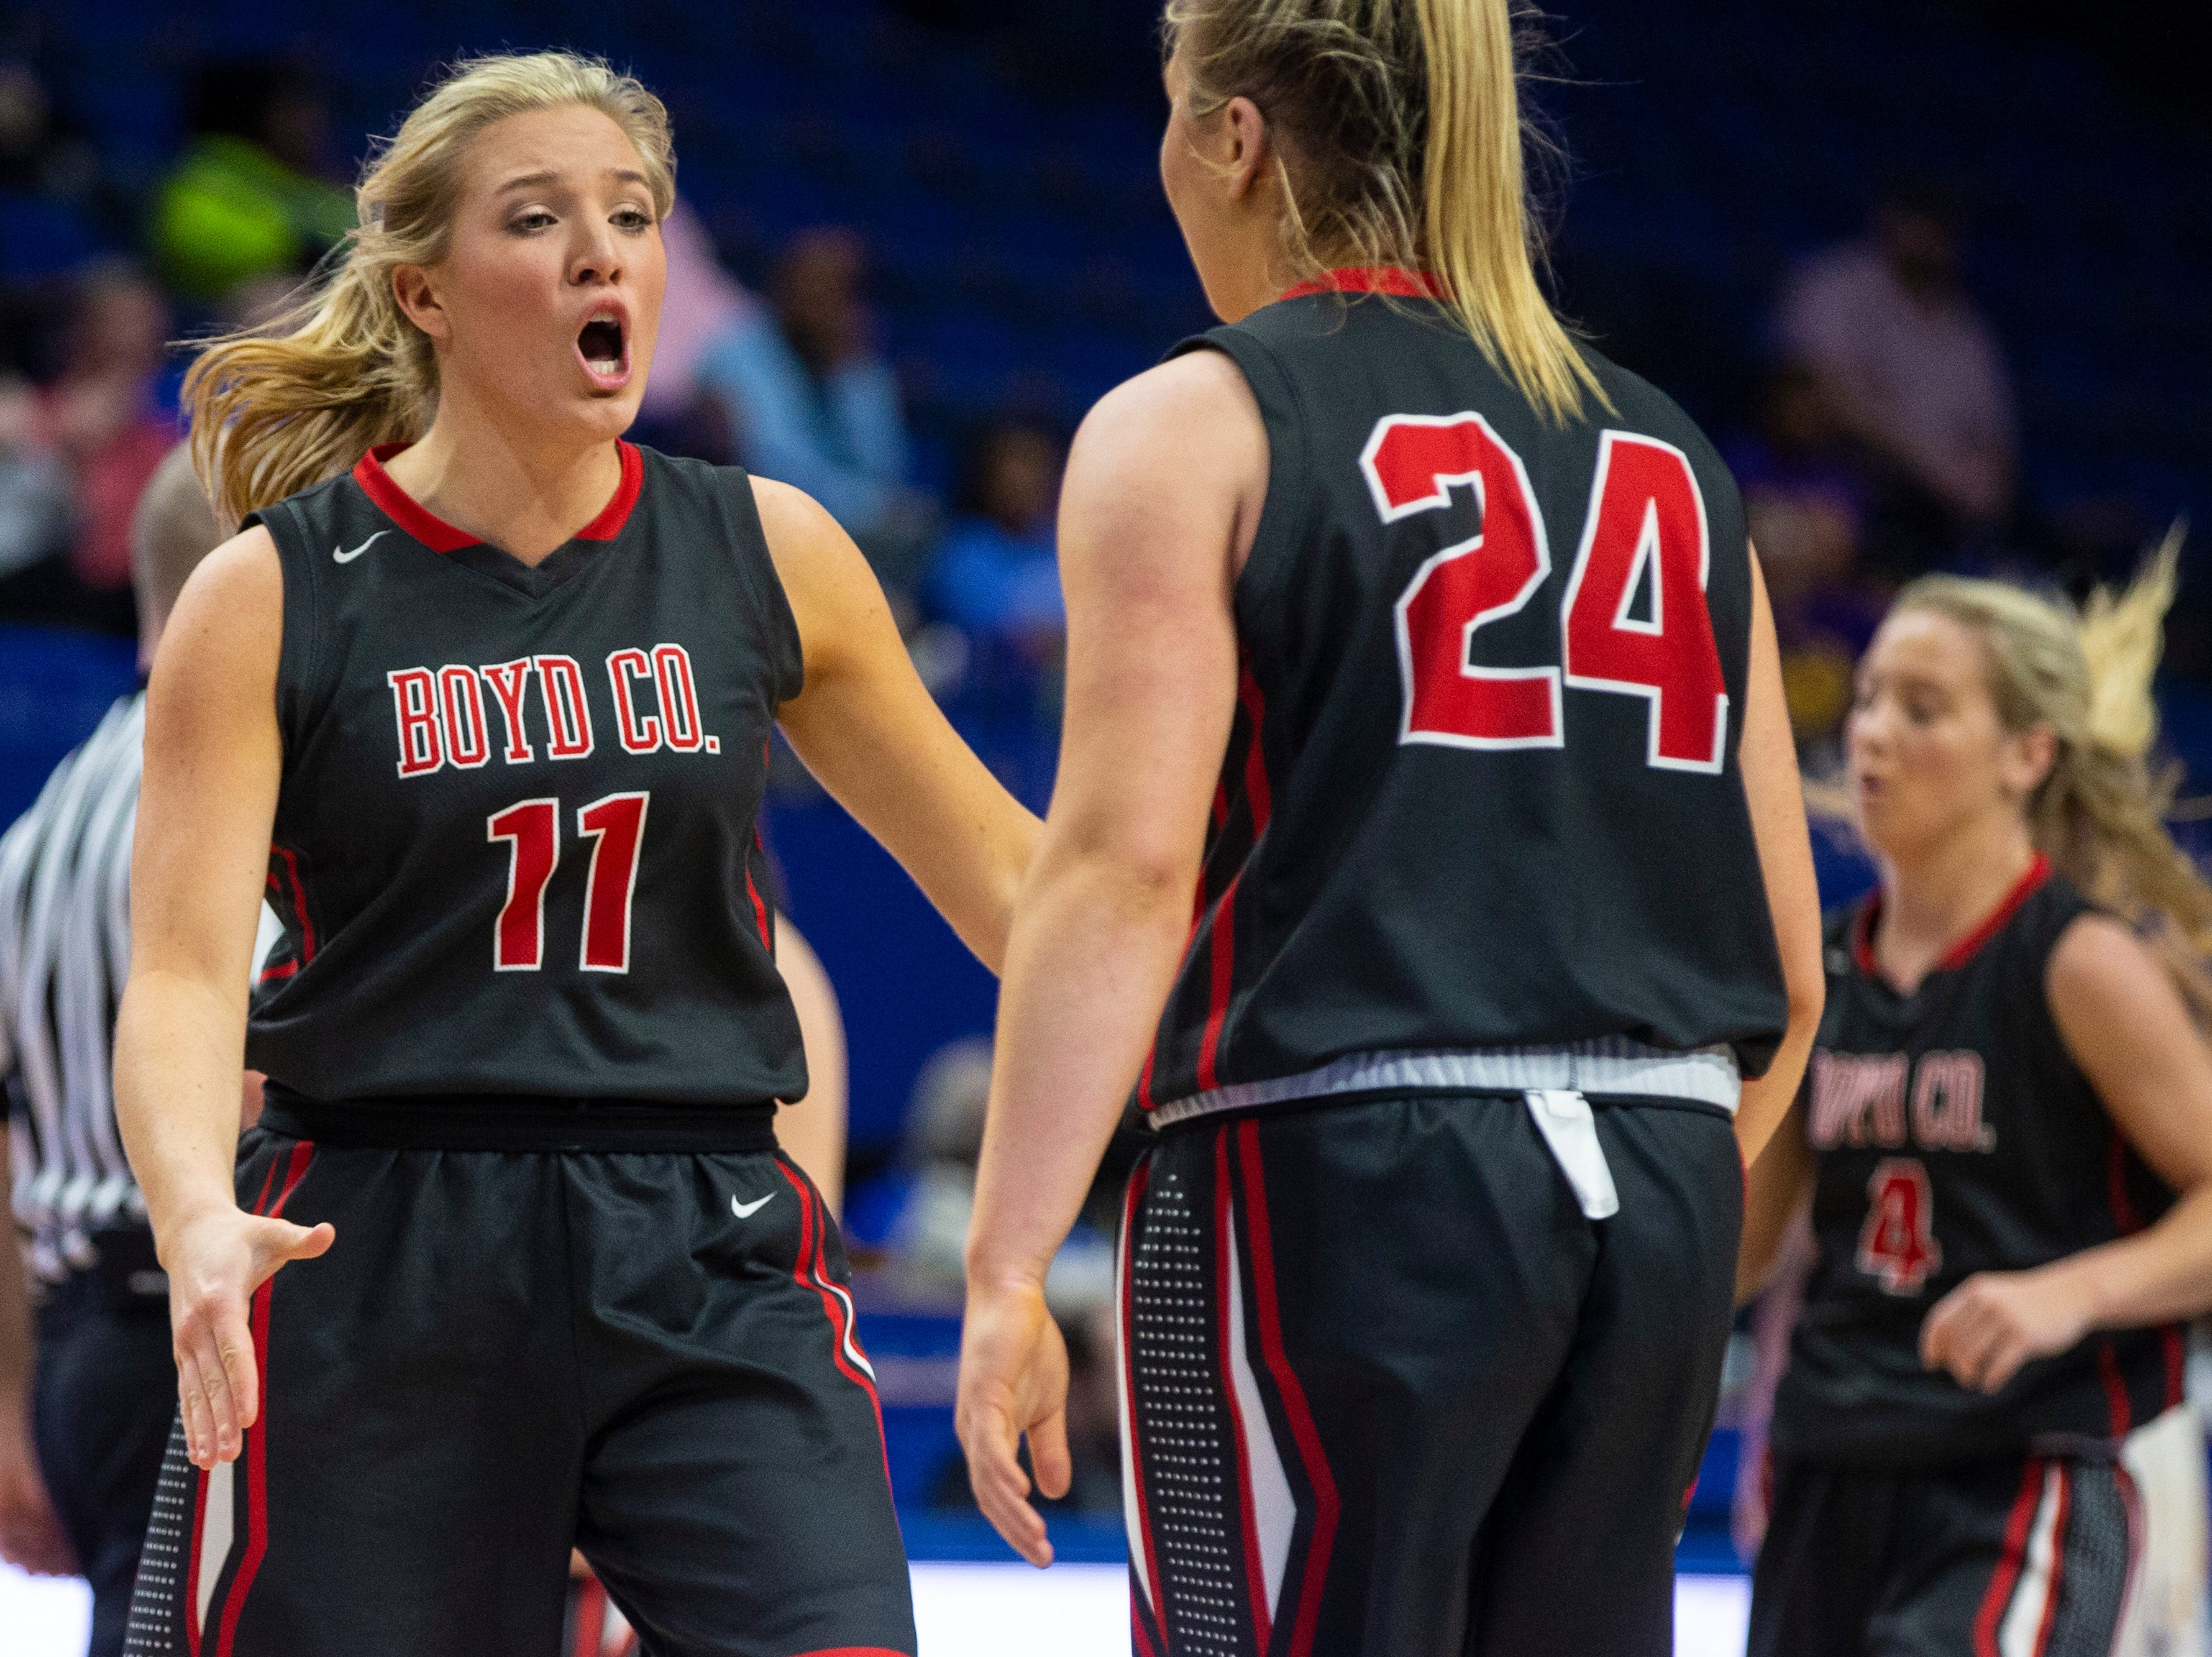 Boyd County's Graci Borders, left, celebrates with Emma Borders as Boyd County took on Louisville Male in the KHSAA state basketball tournament in Rupp Arena. Male eliminated Boyd County 74-56. March 14, 2019